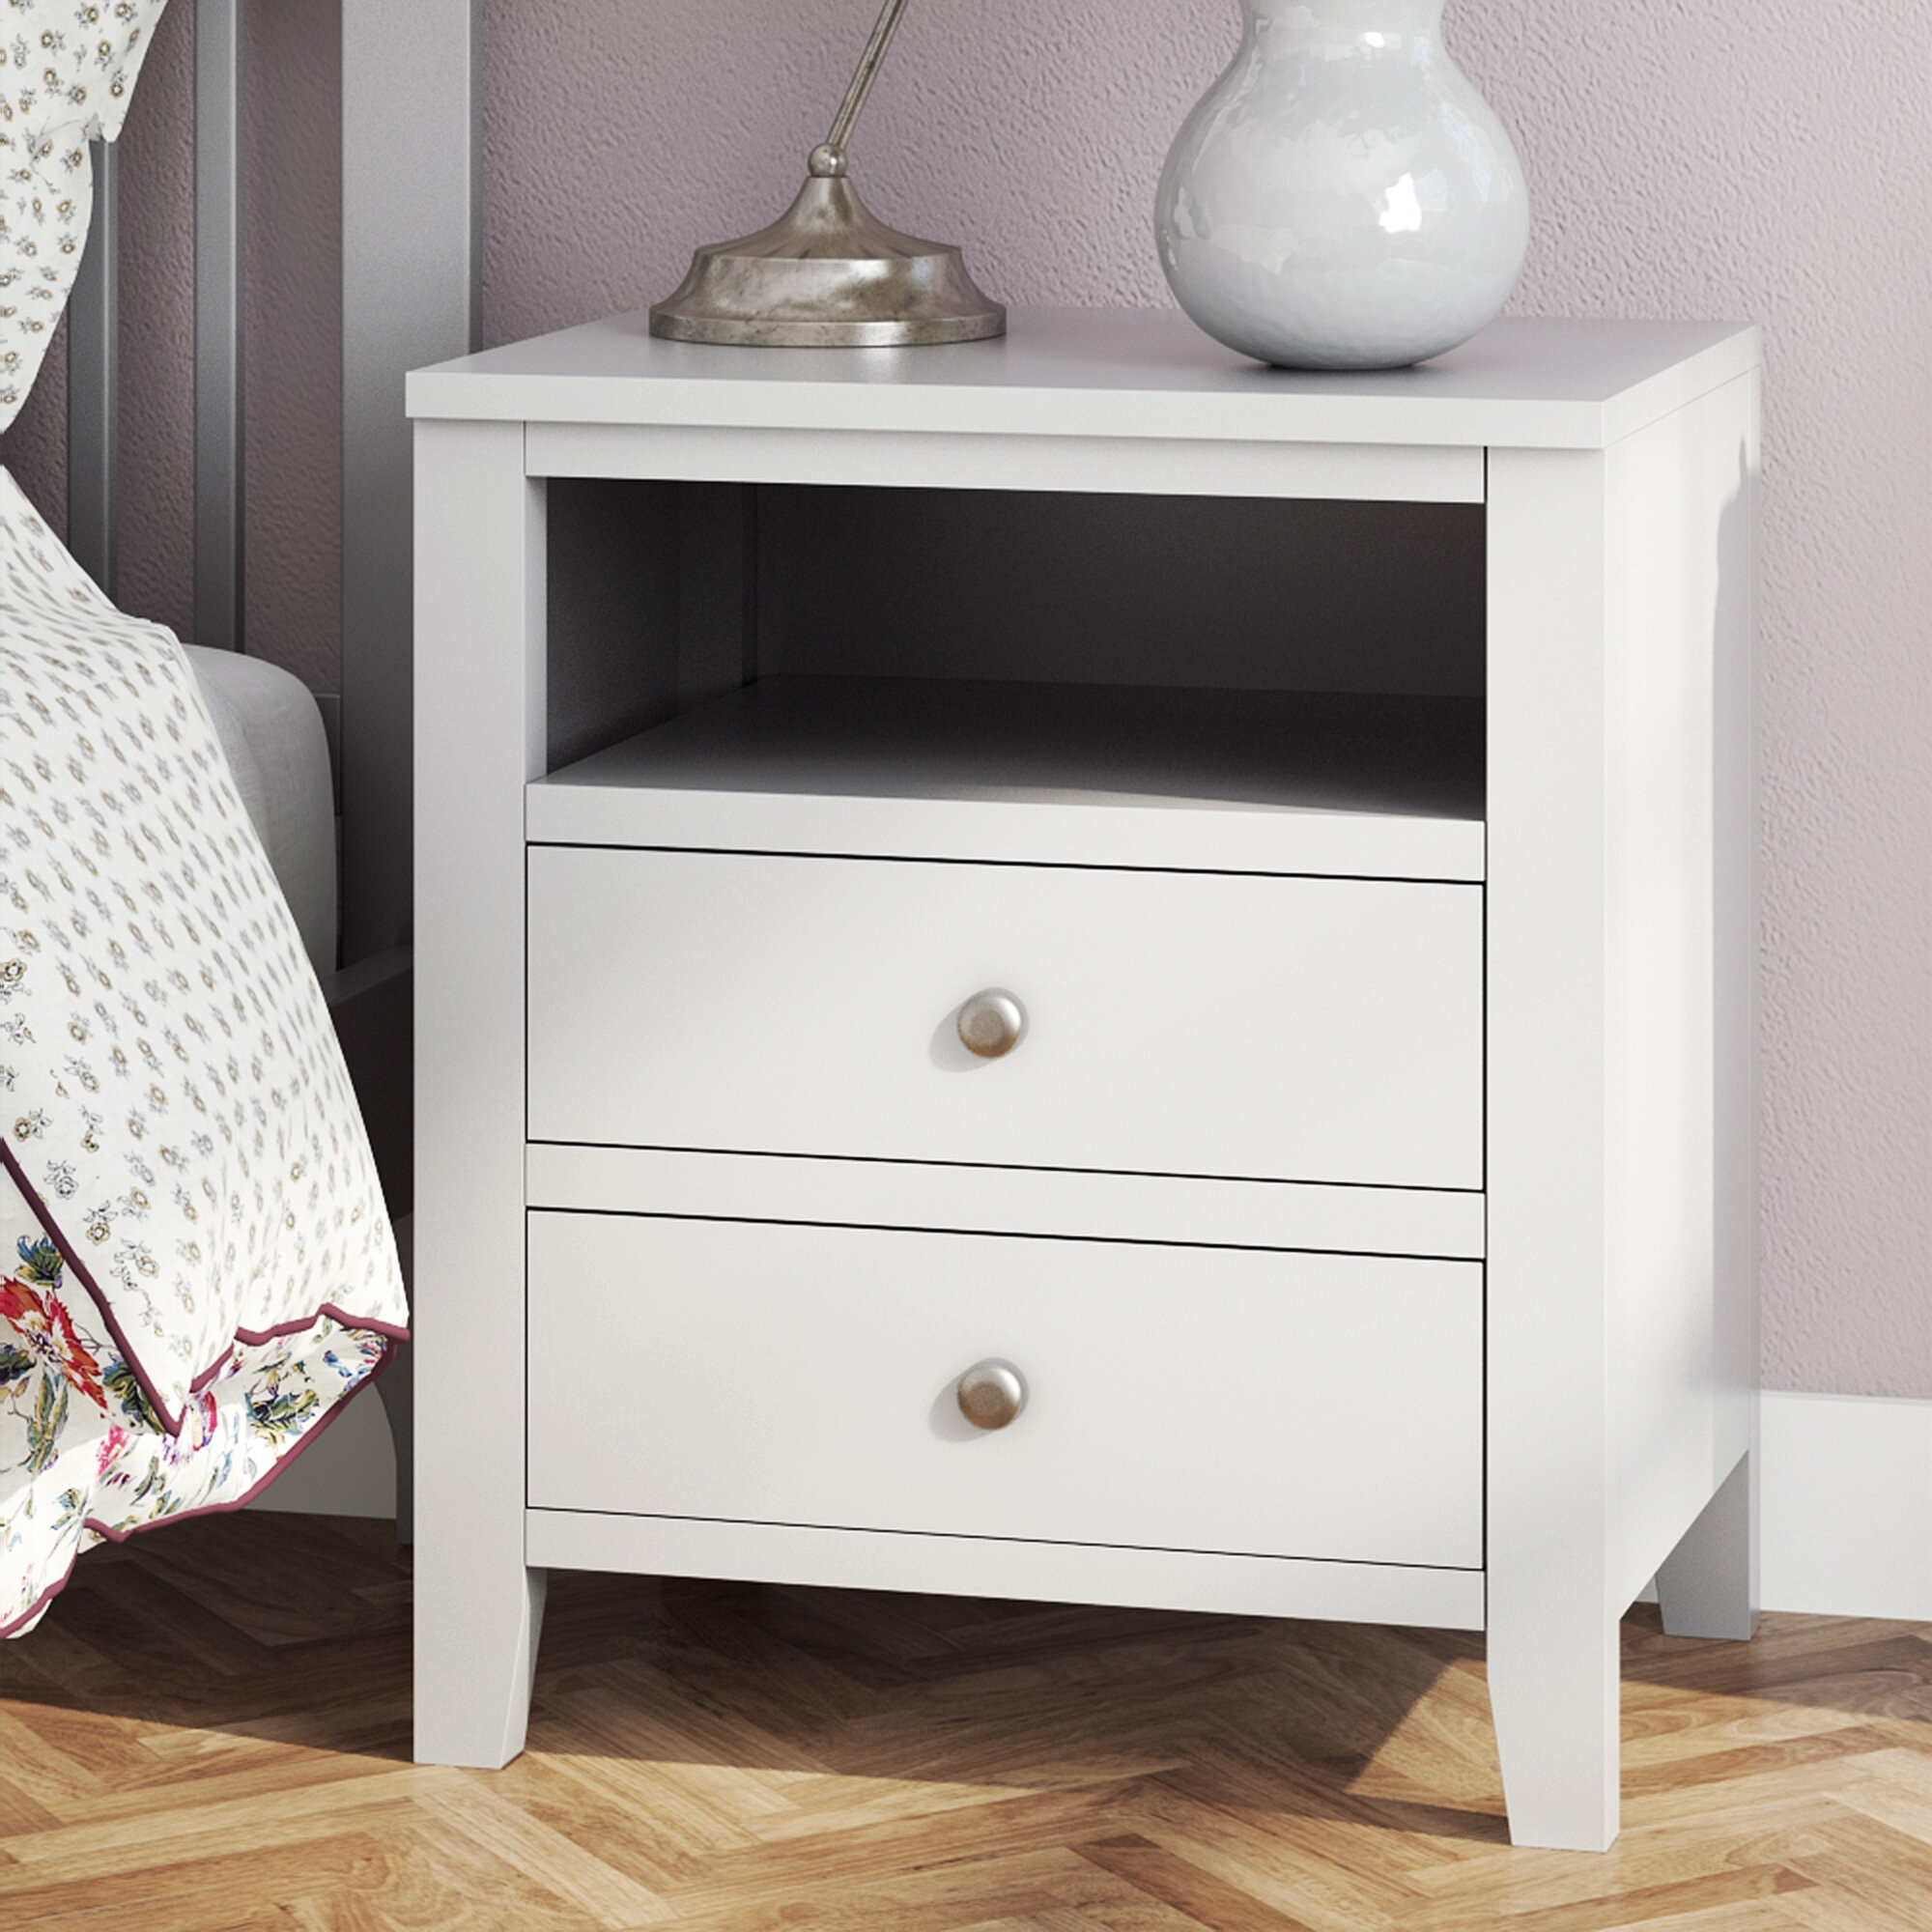 shelfdorset dorset drawers with oak tables occasional furniture table console detail shelf drawer